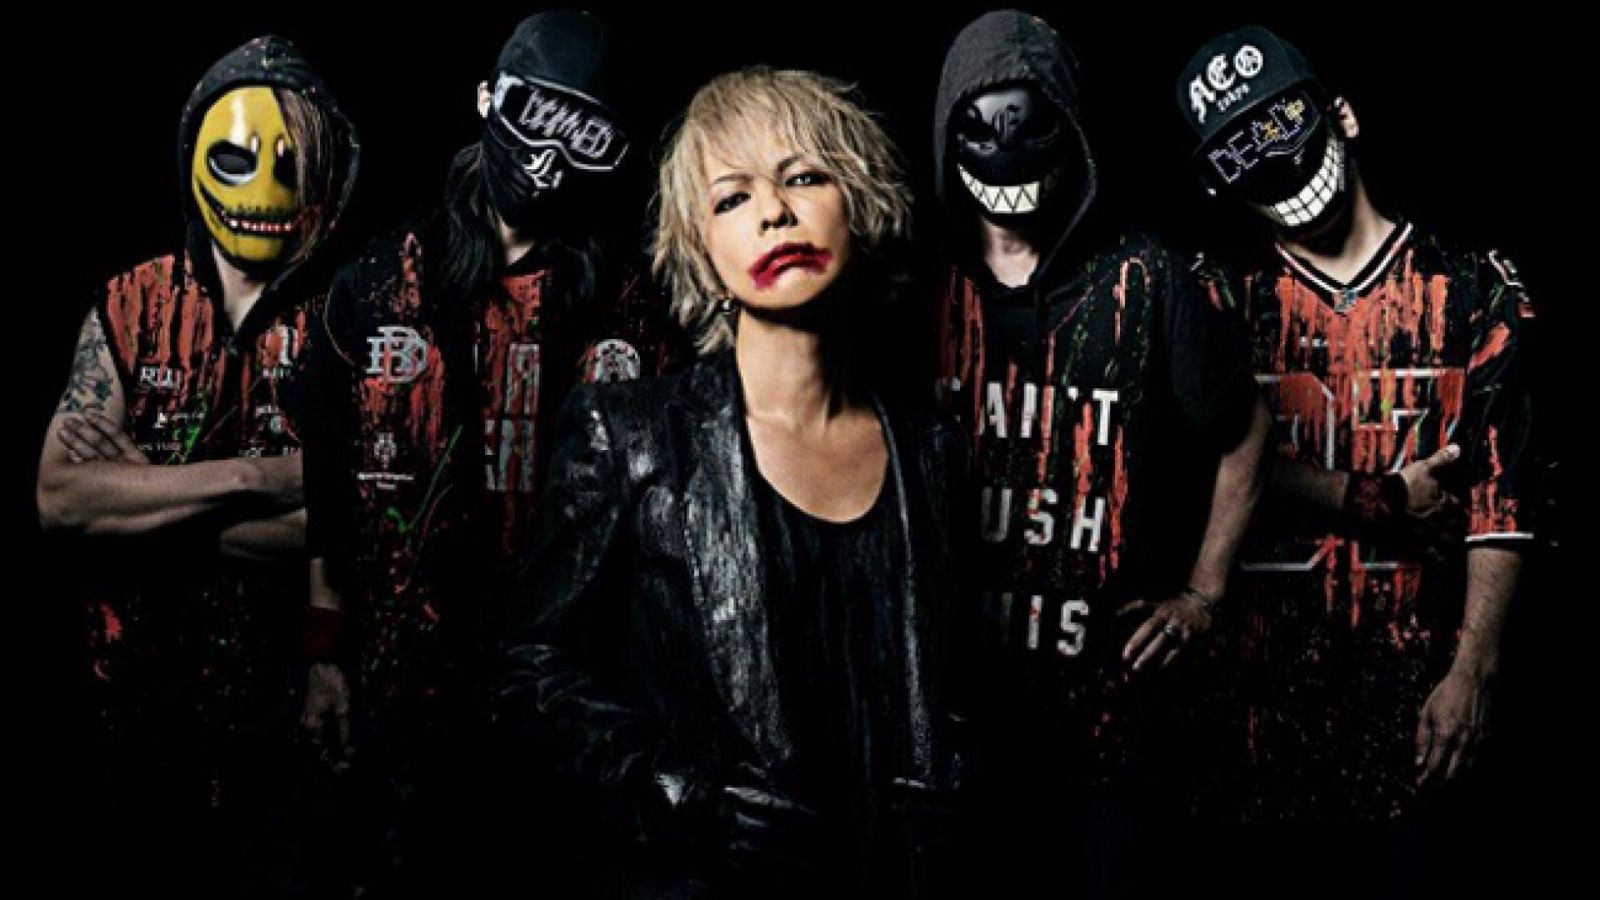 HYDE Adds Solo Dates to US Tour in May © UNIVERSAL MUSIC LLC. All rights reserved.